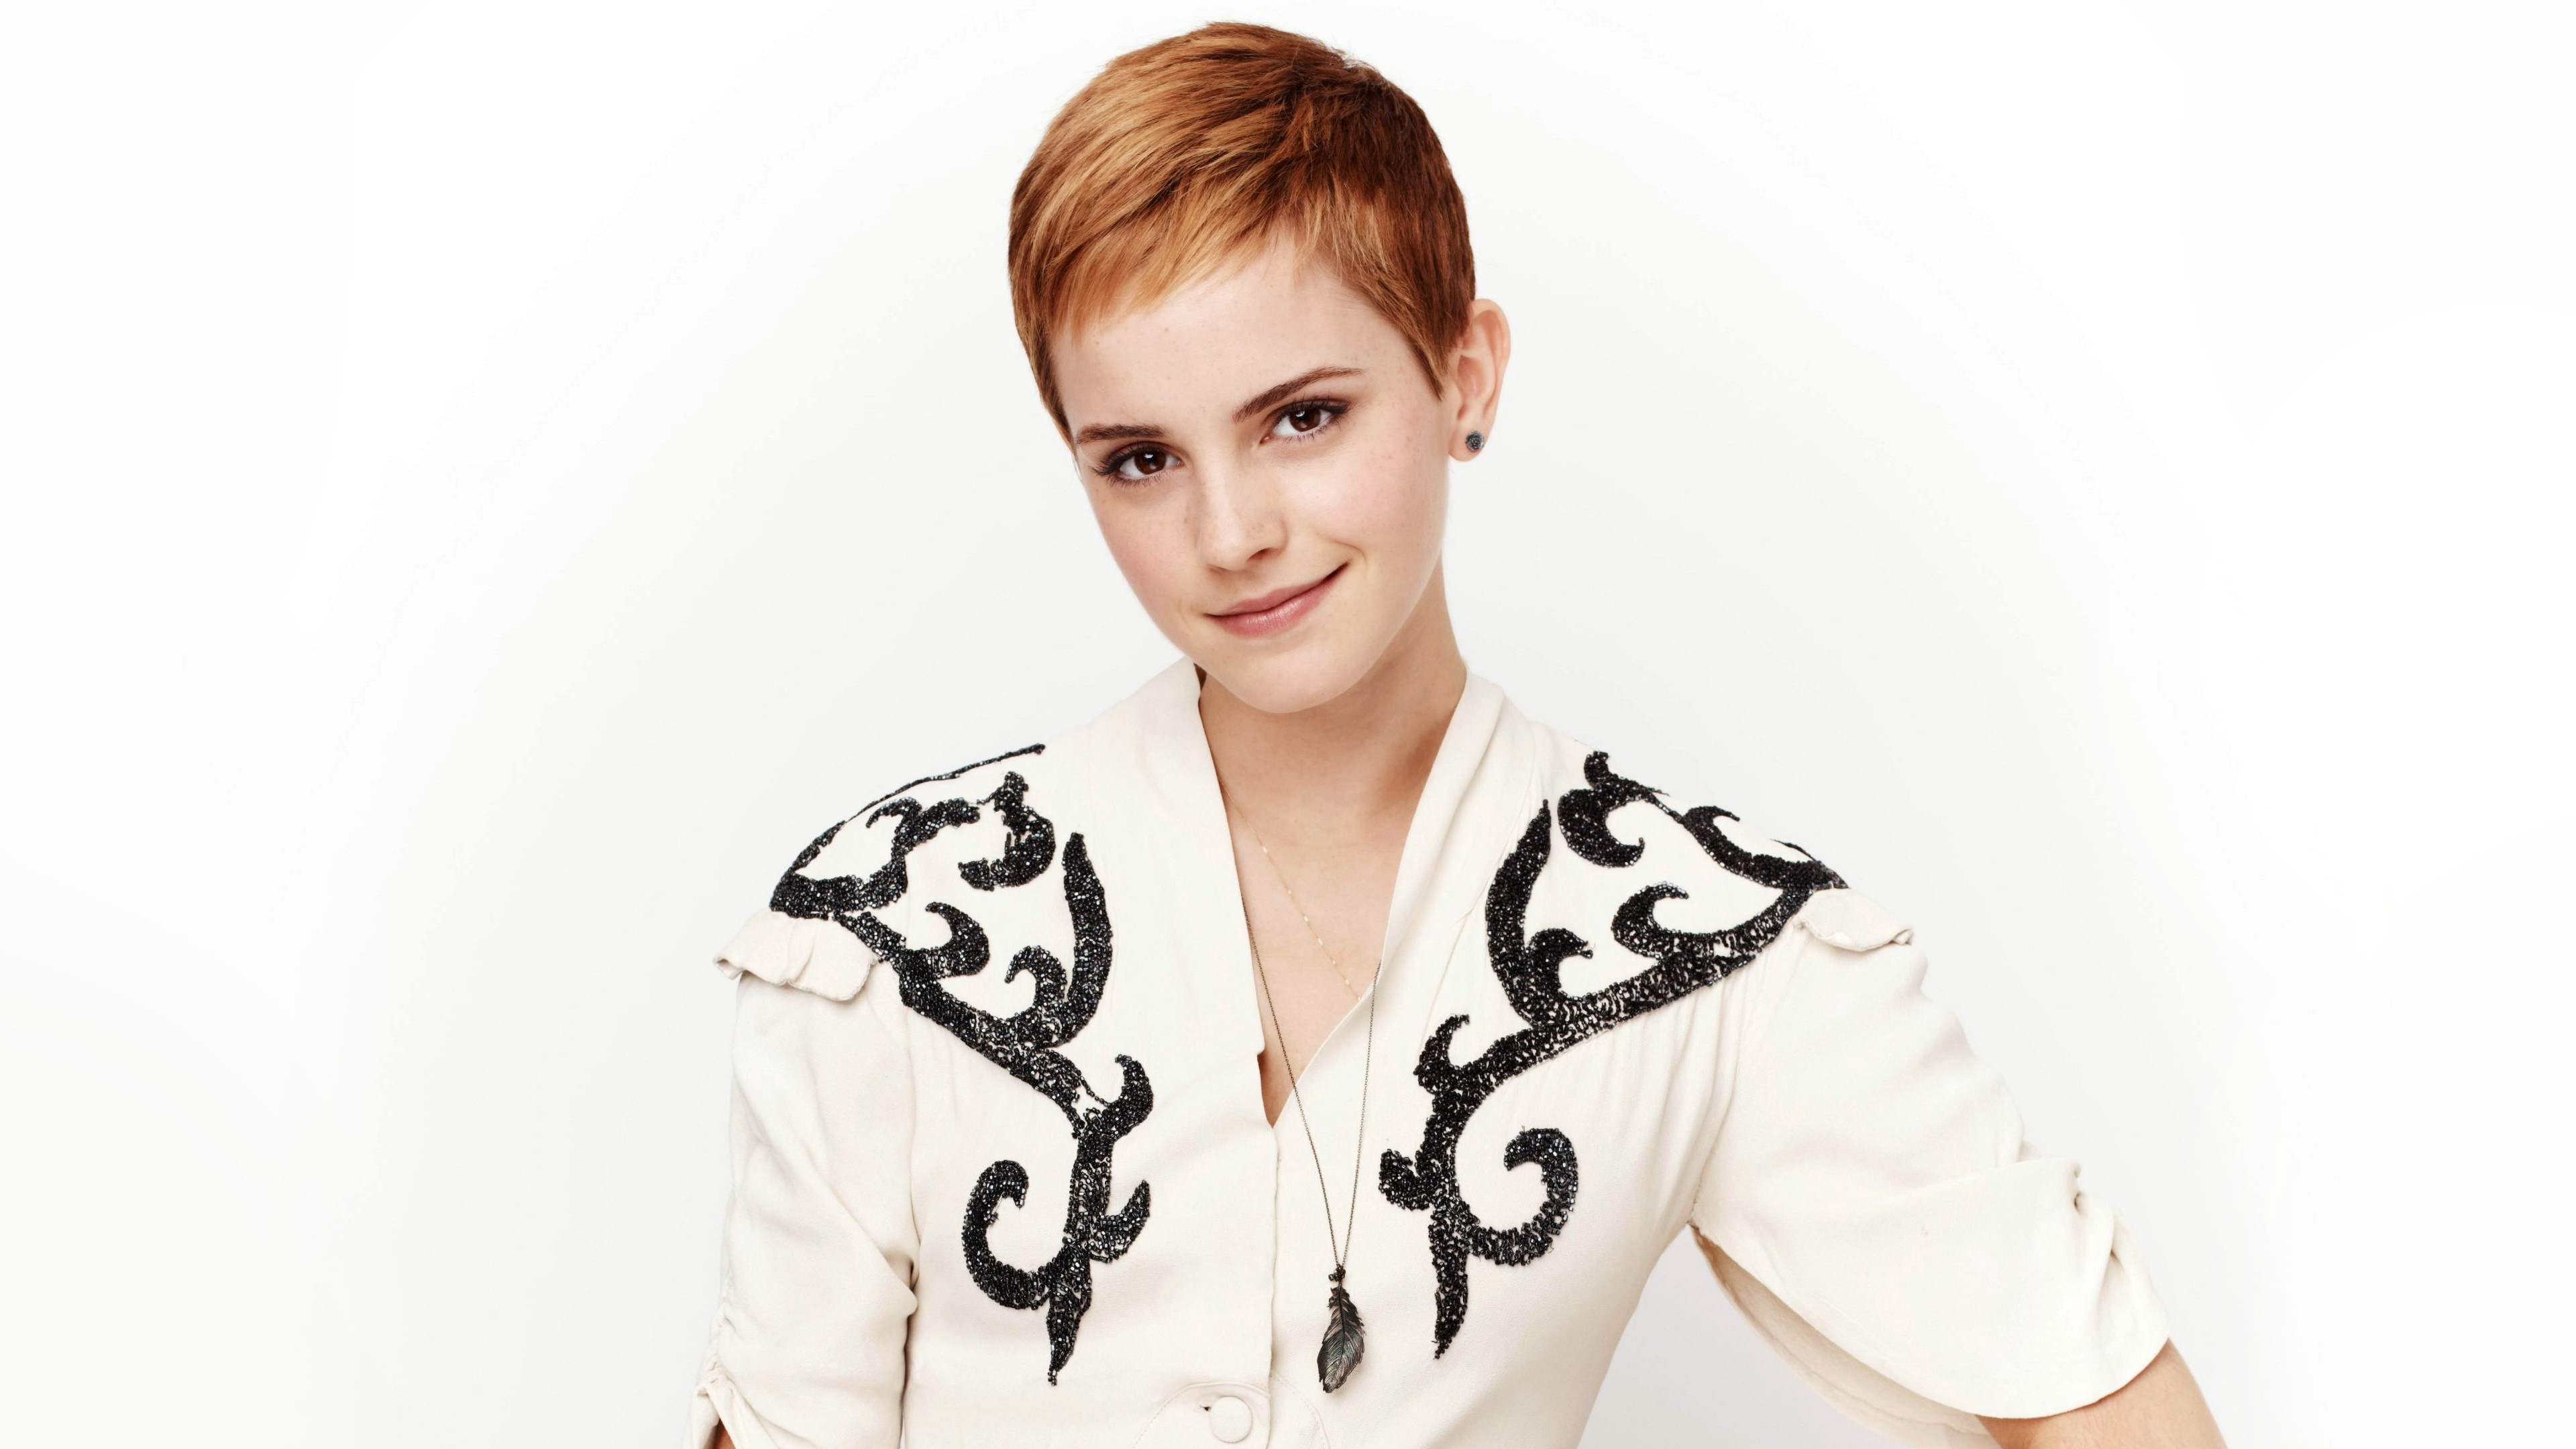 Leather Wallpaper Iphone 6 Emma Watson 320 Wallpapers Hd Wallpapers Id 18190